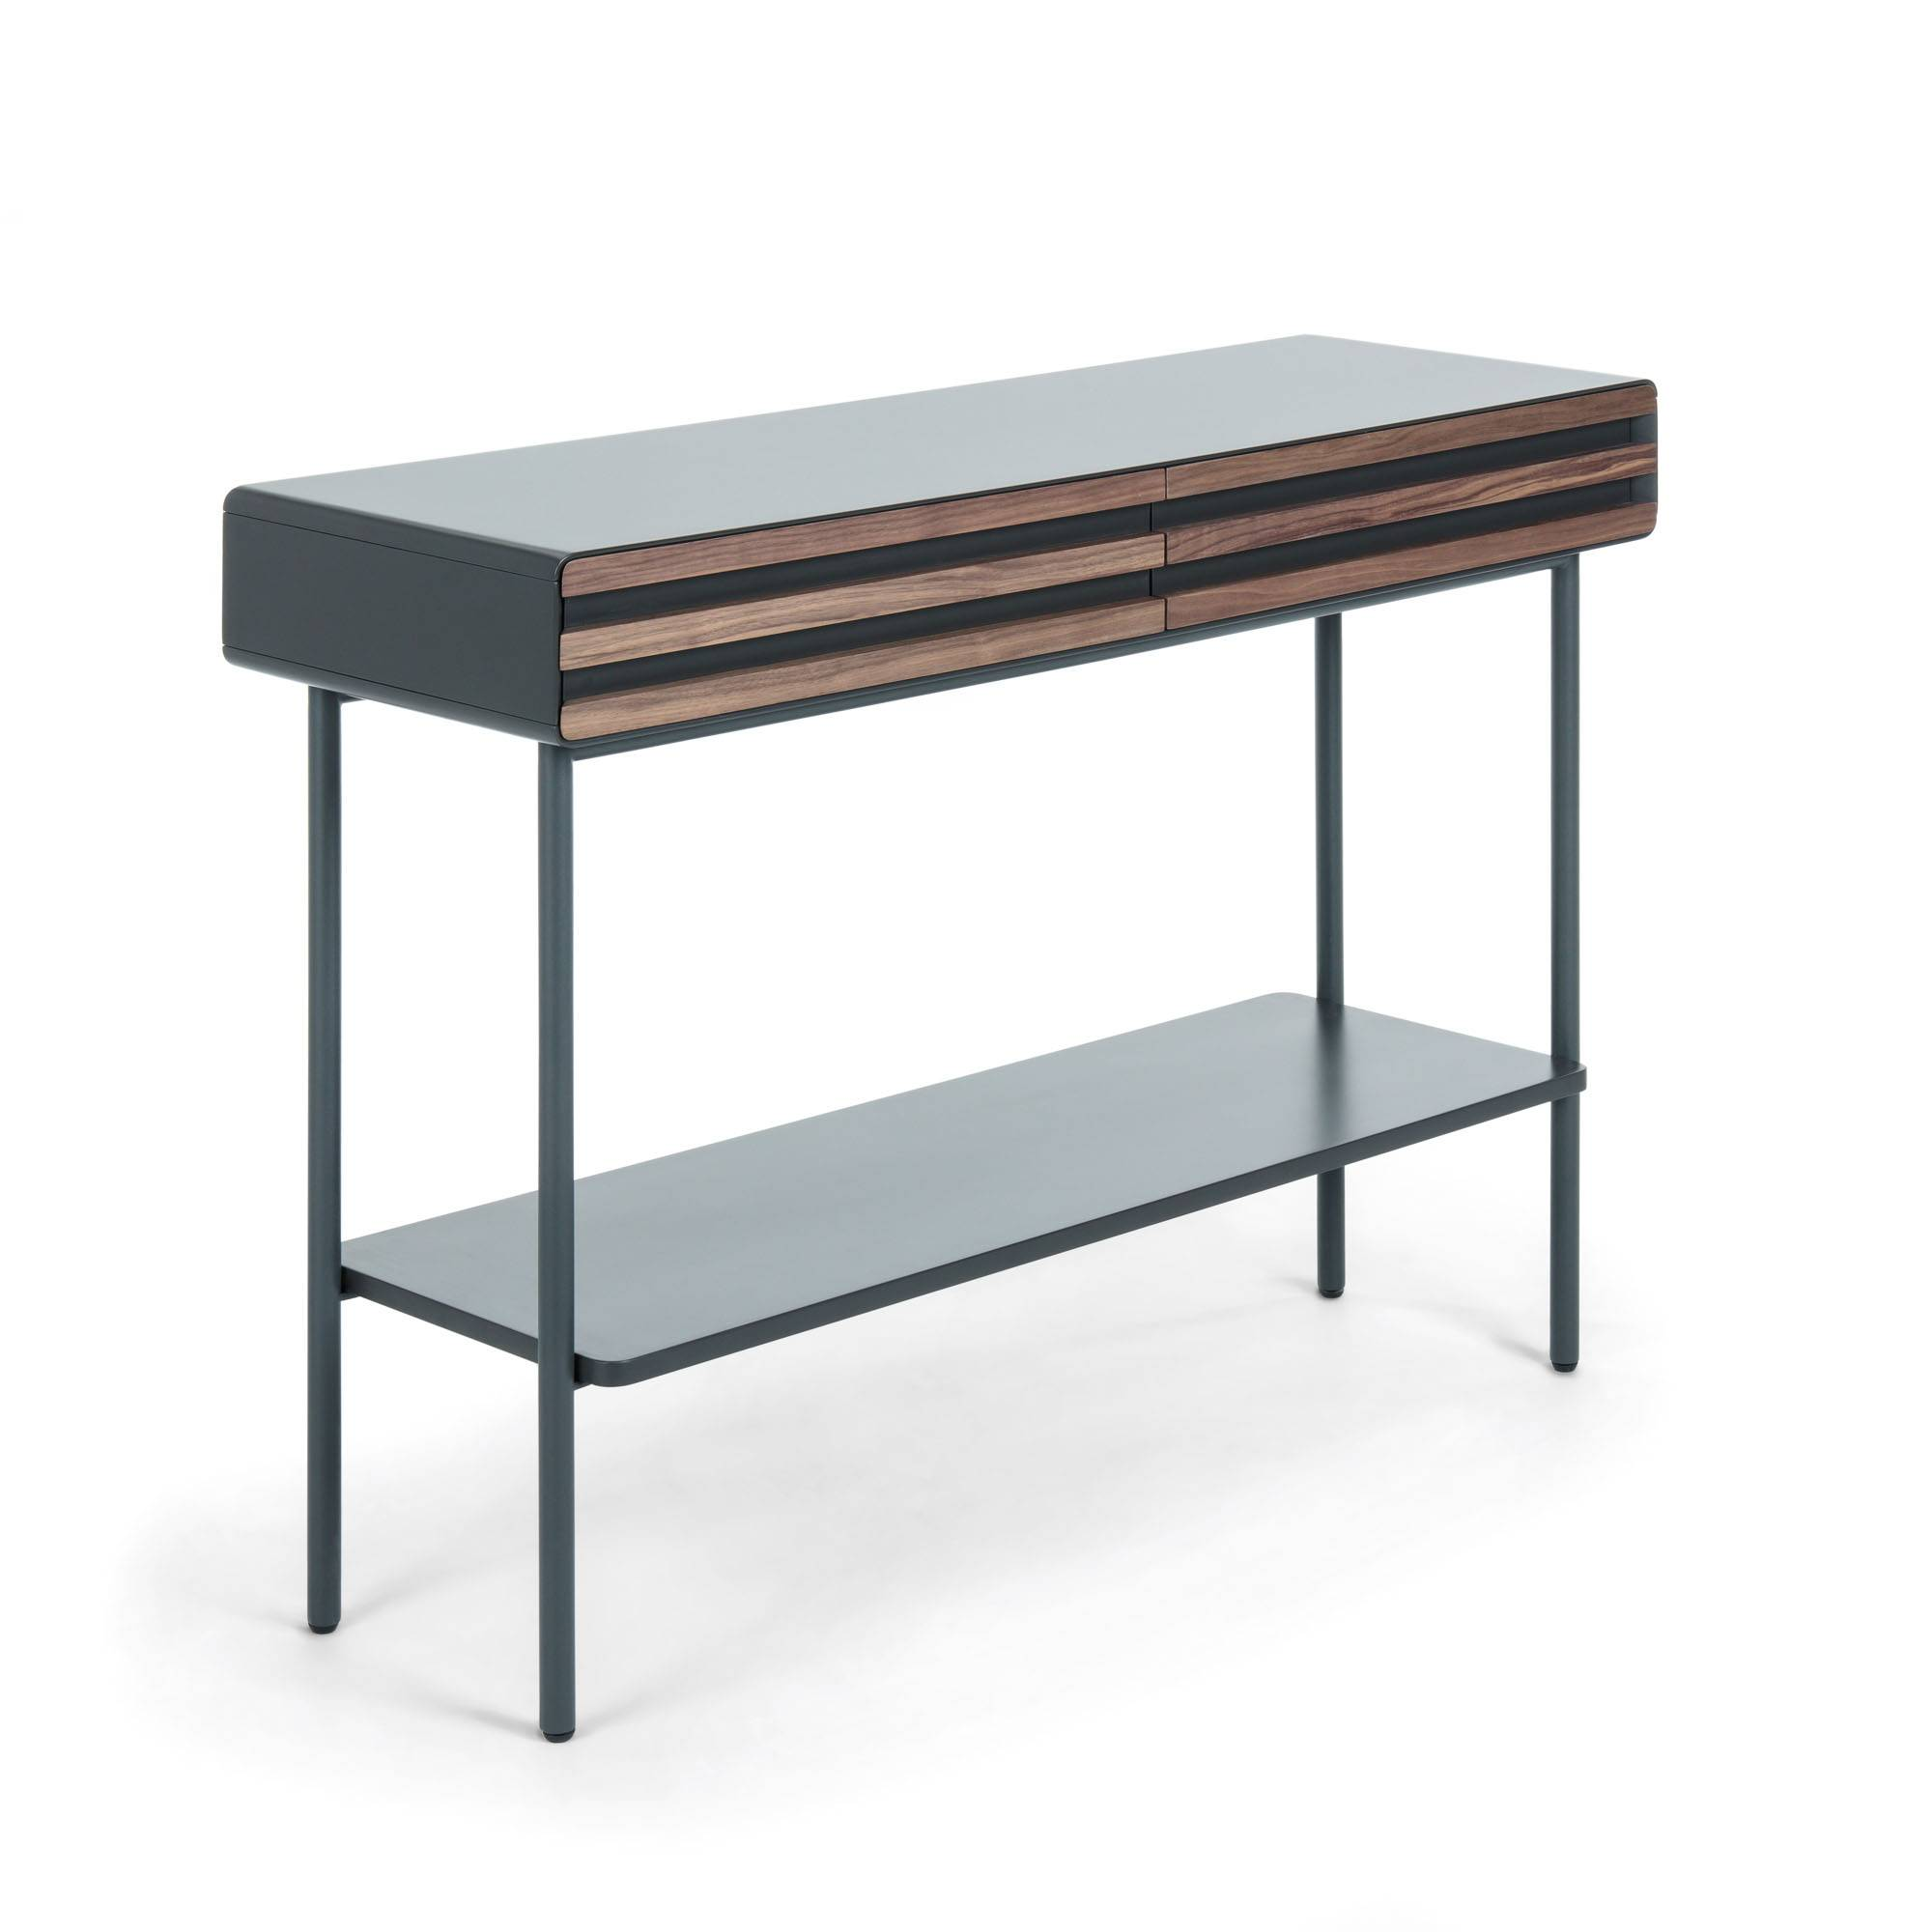 Kave Home Consolle Kesia 120 x 85 cm